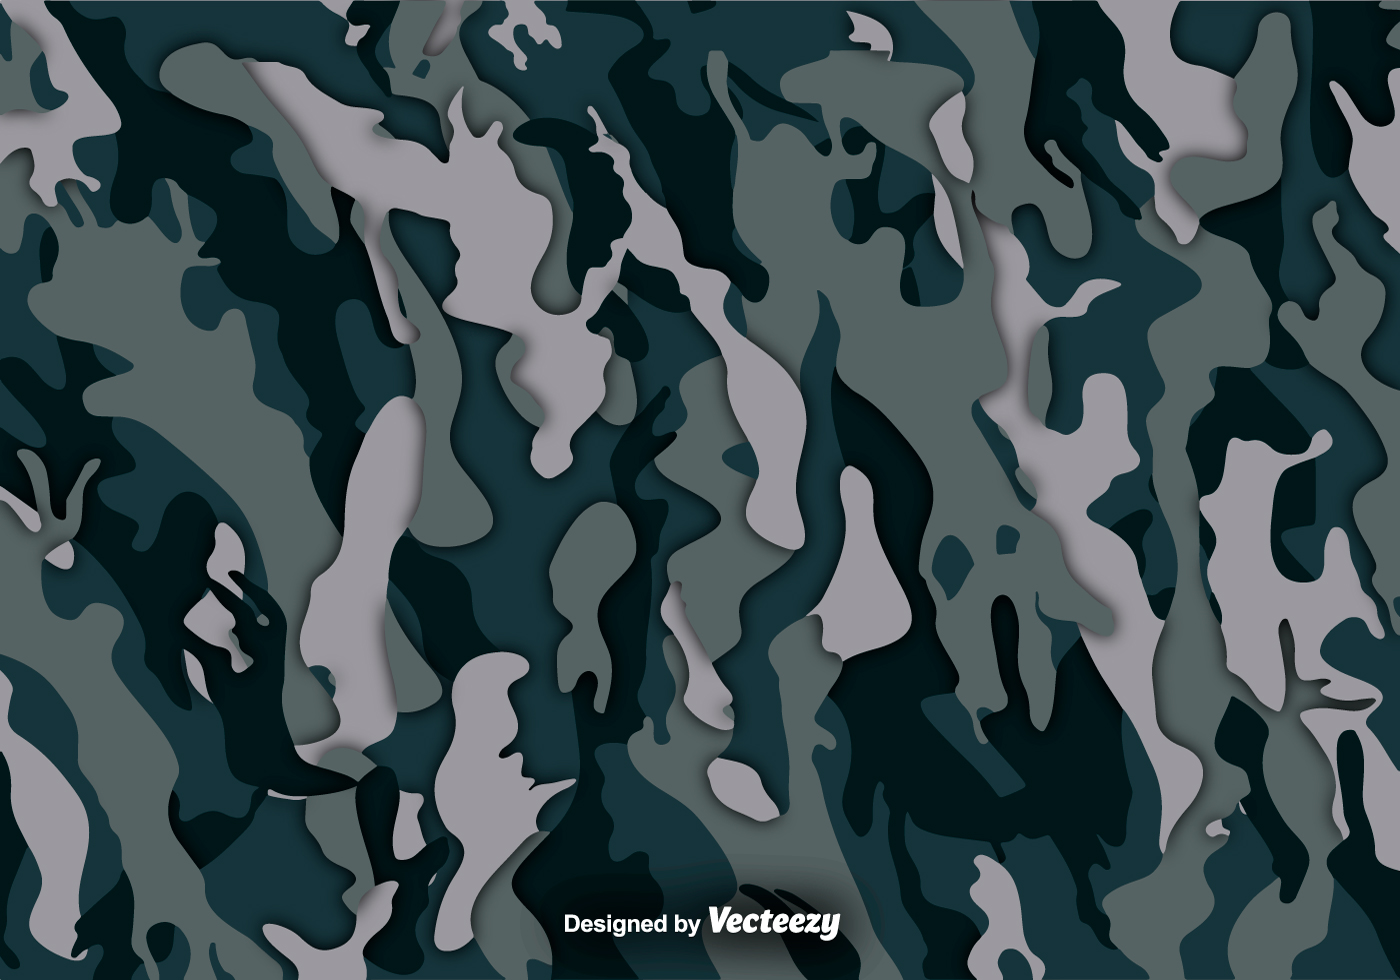 Multicam Vector Camouflage Background - Download Free